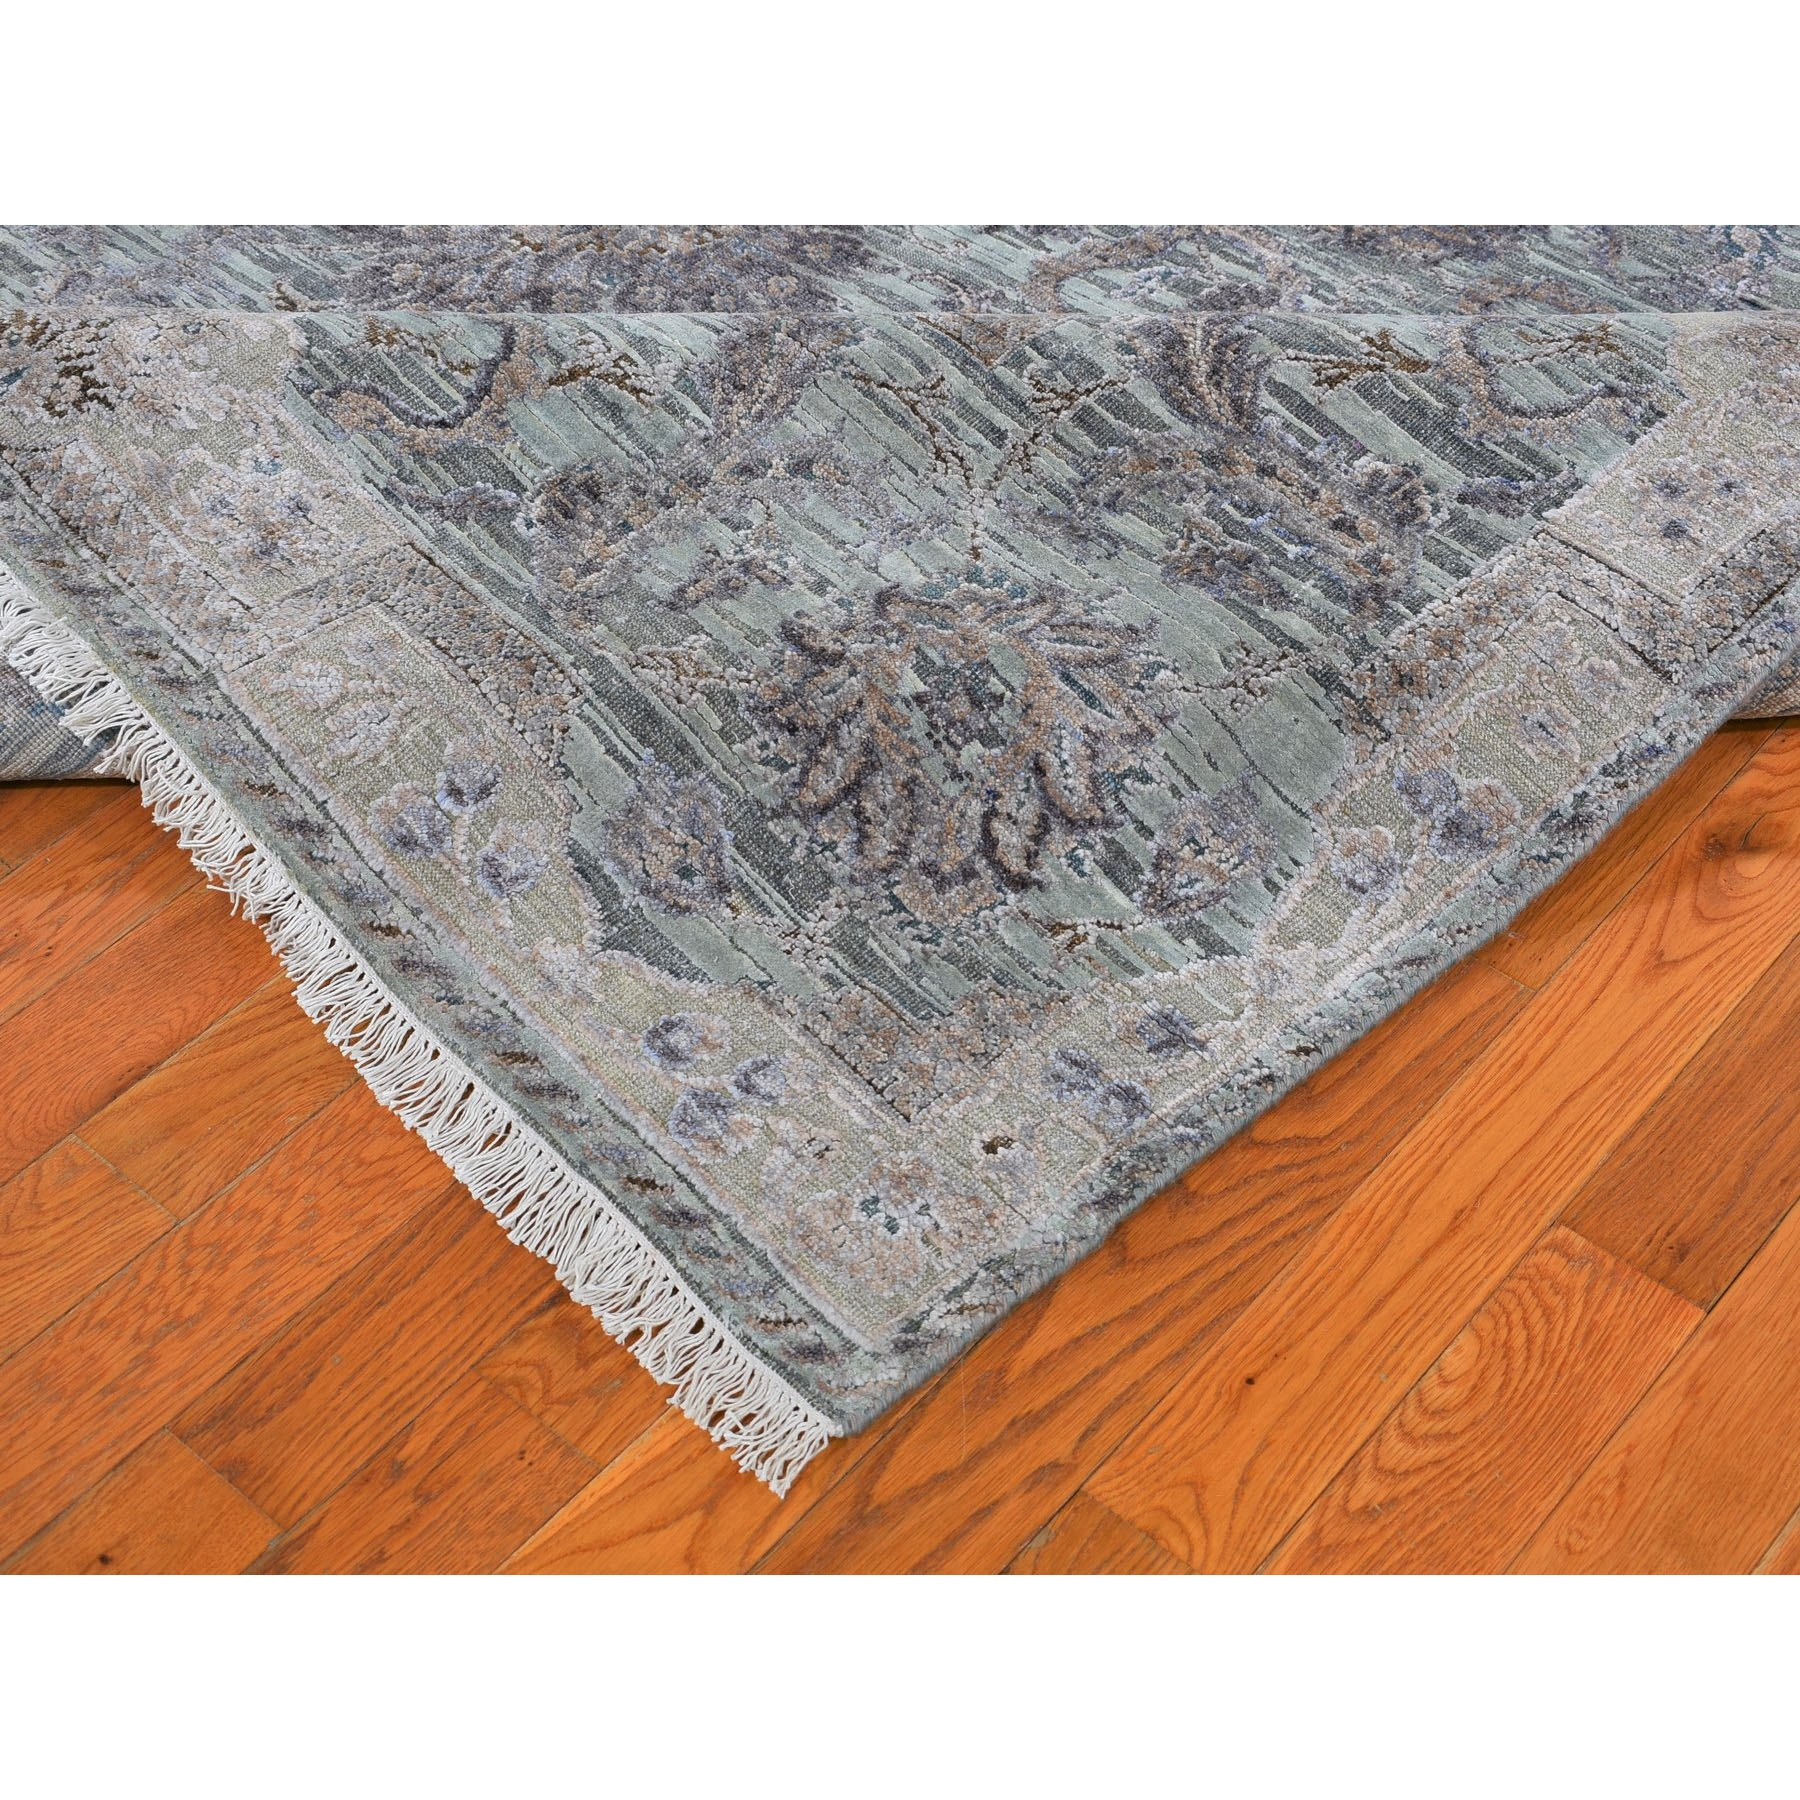 5-x6-10  Light Green Pure Silk With Textured Wool Mughal Design Hand Knotted Oriental Rug